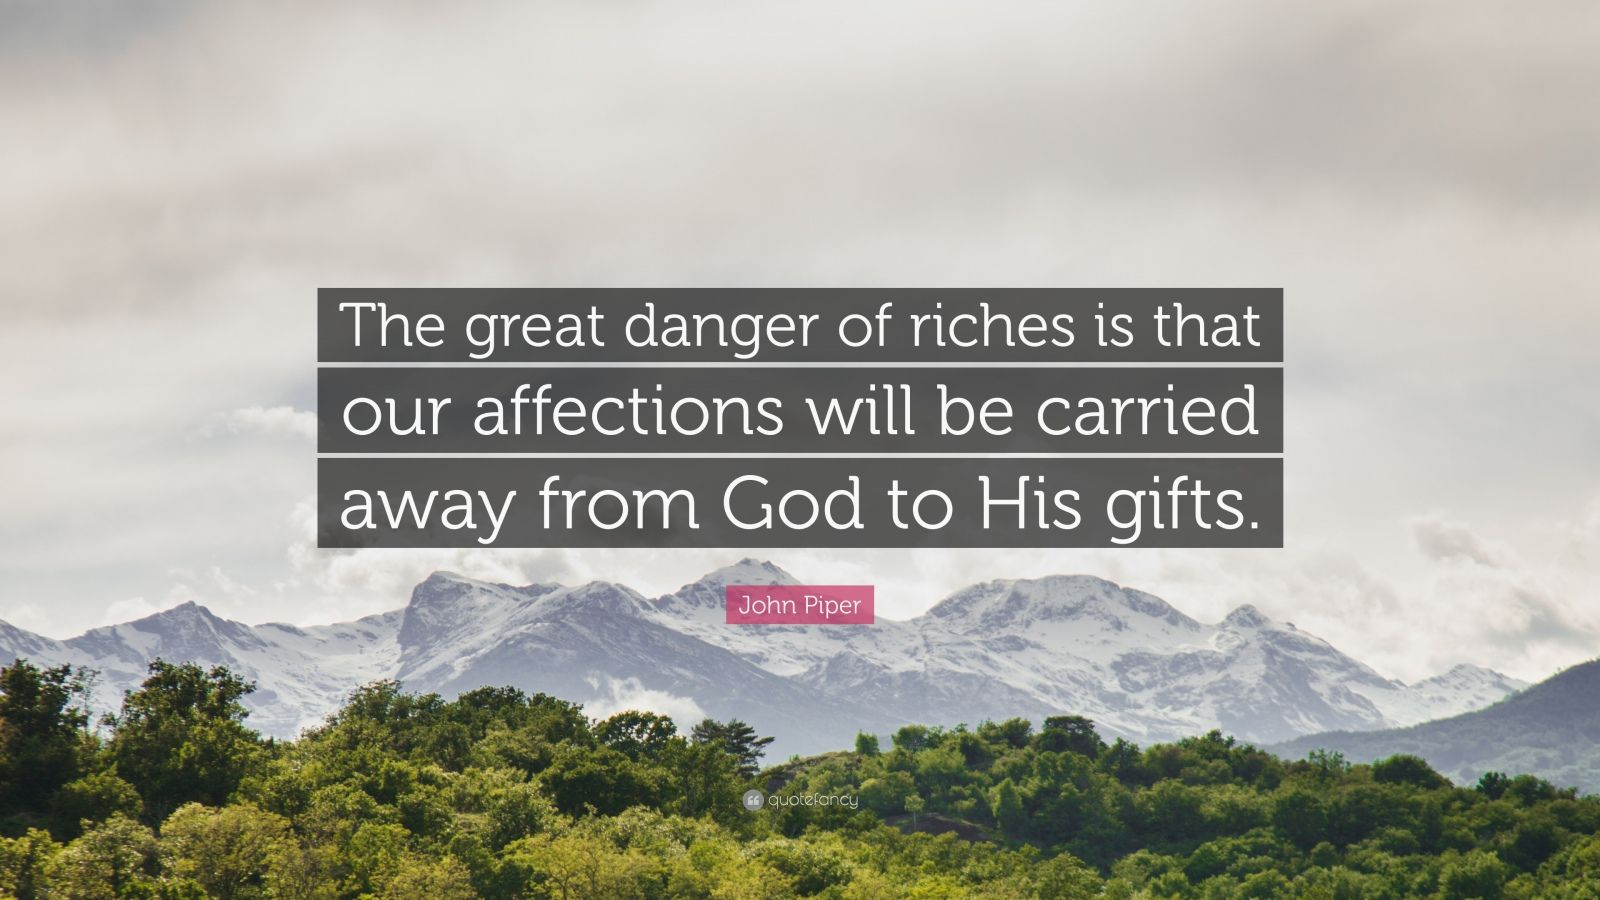 """John Piper Quote: """"The great danger of riches is that our affections will be carried away from God to His gifts."""""""